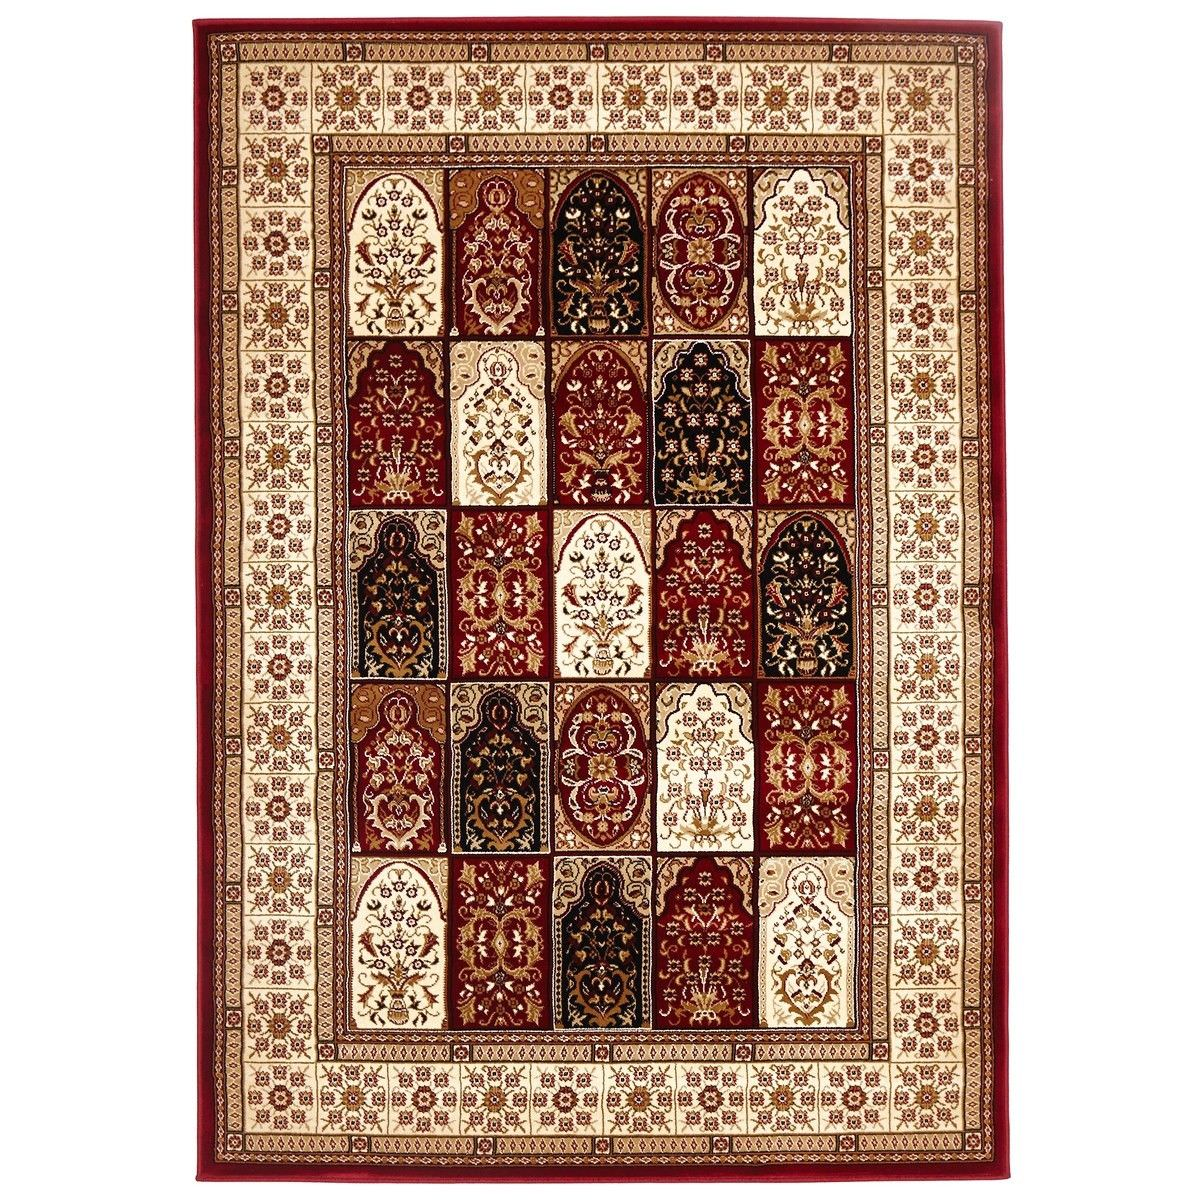 Sydney Traditional Tile Turkish Made Oriental Rug, 400x300cm, Red / Ivory